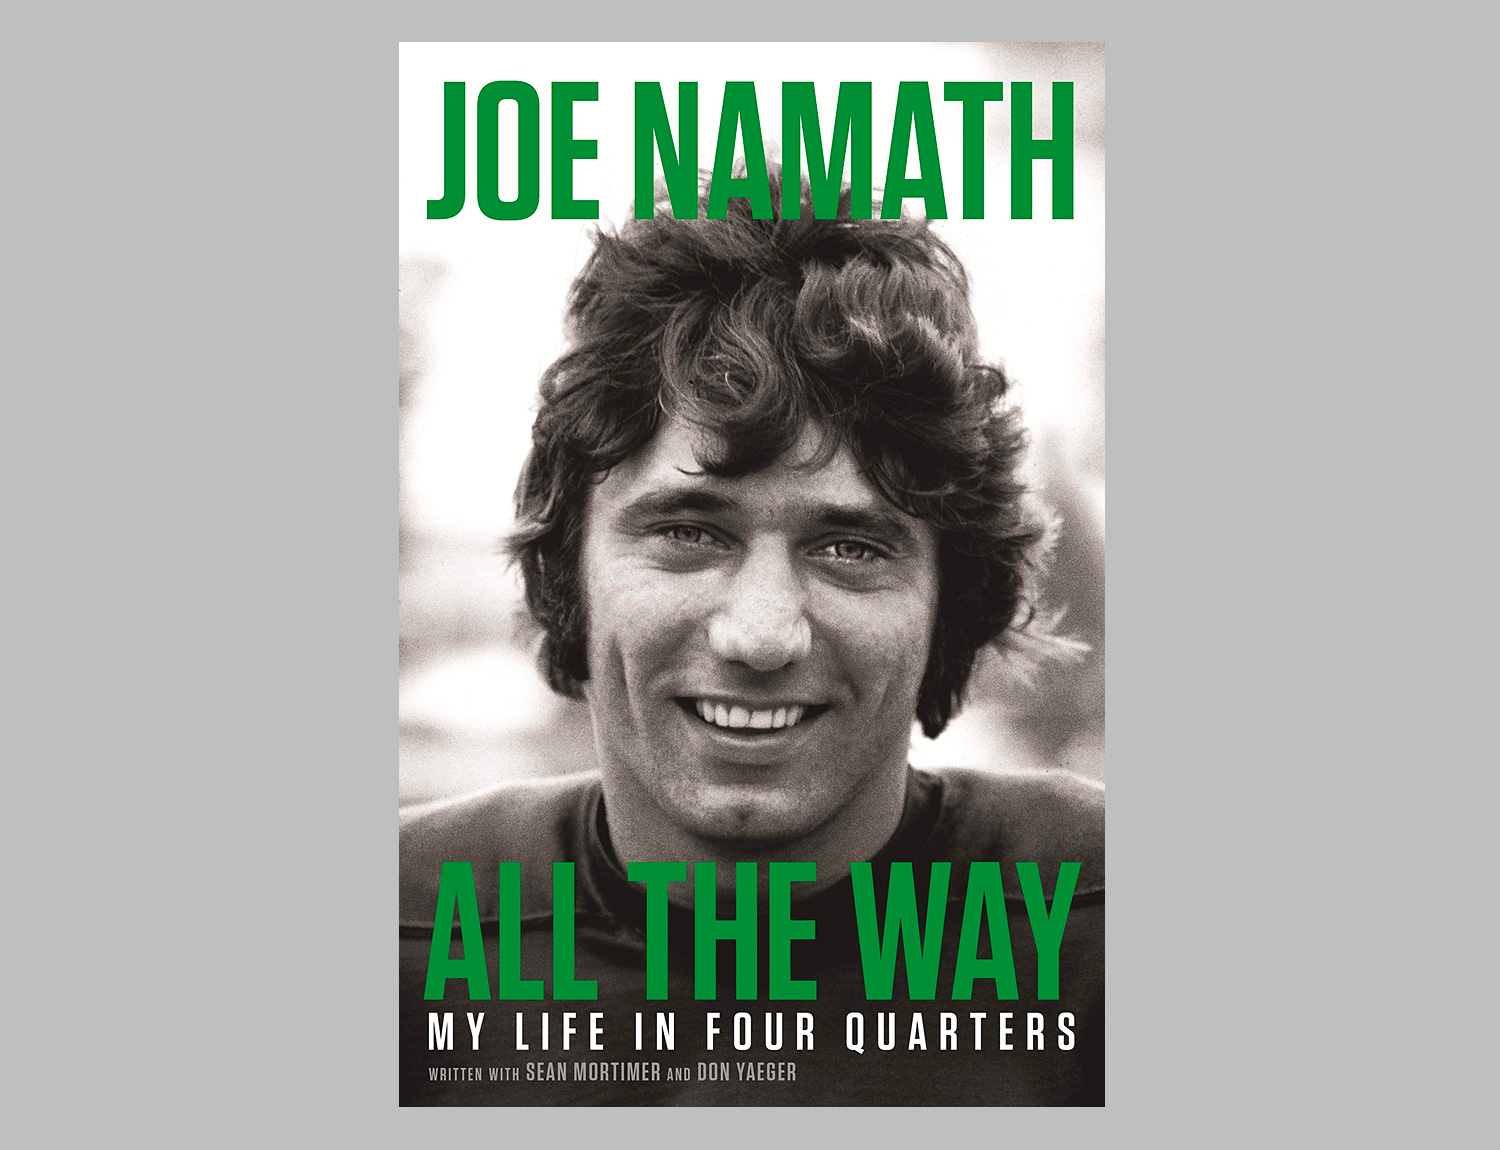 All the Way: My Life in Four Quarters by Joe Namath at werd.com